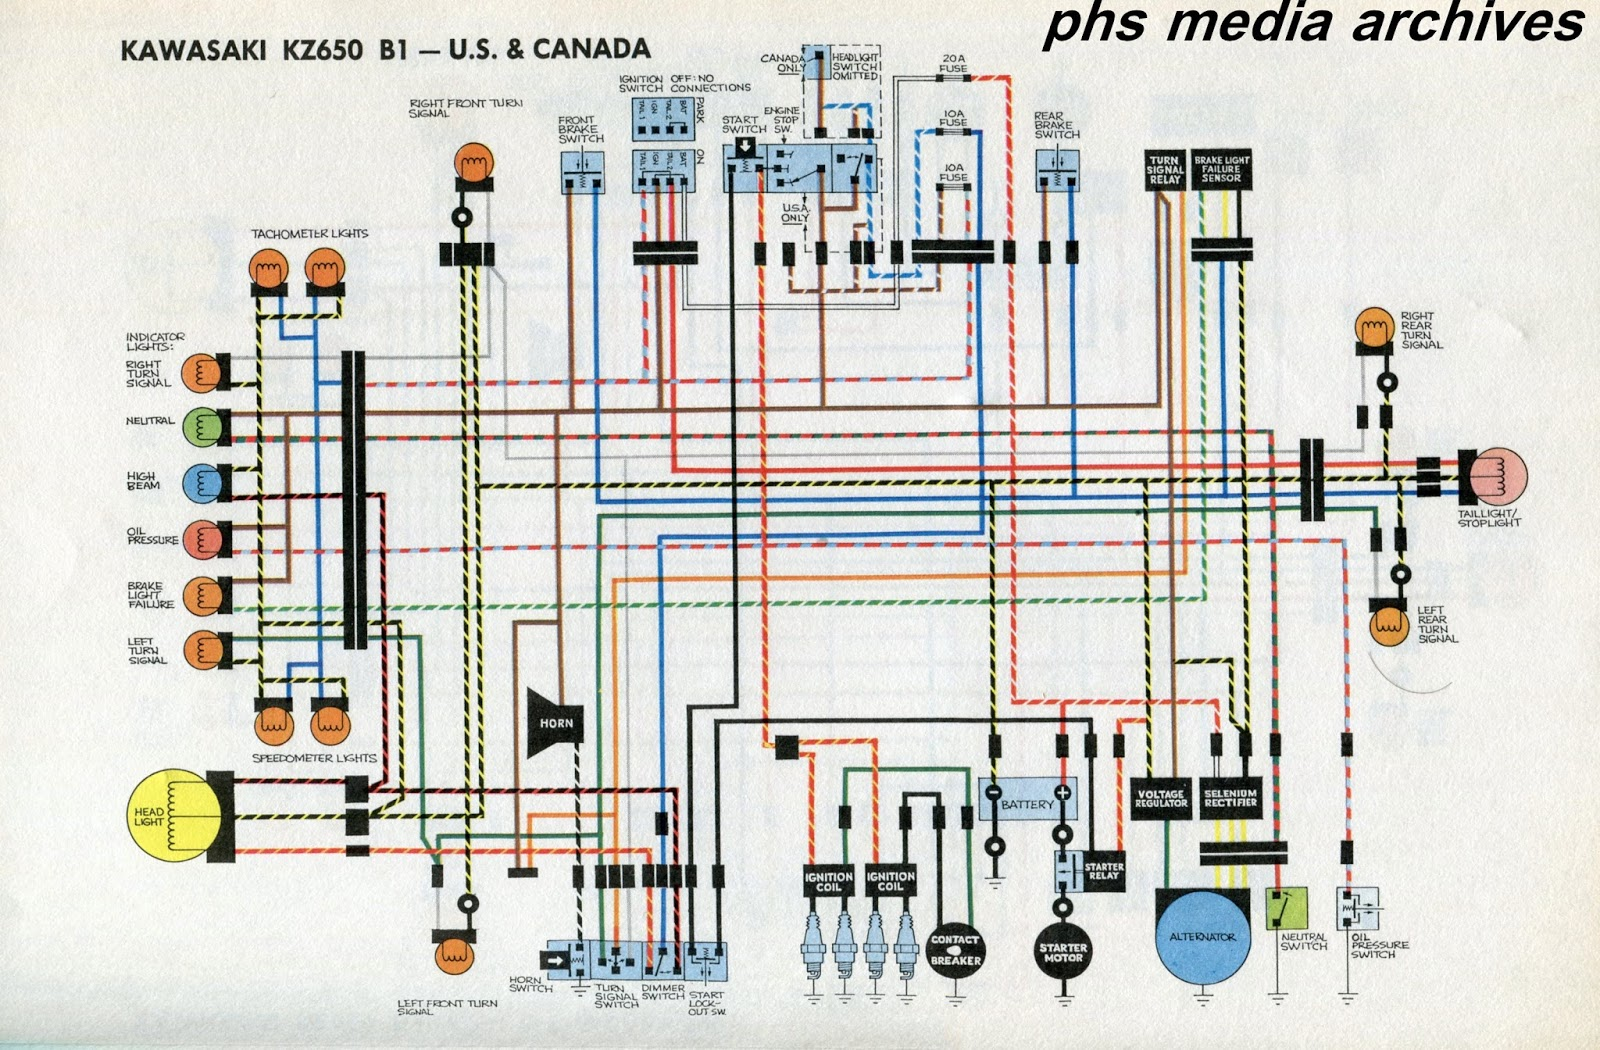 Kz650 Wiring Diagram from 1.bp.blogspot.com